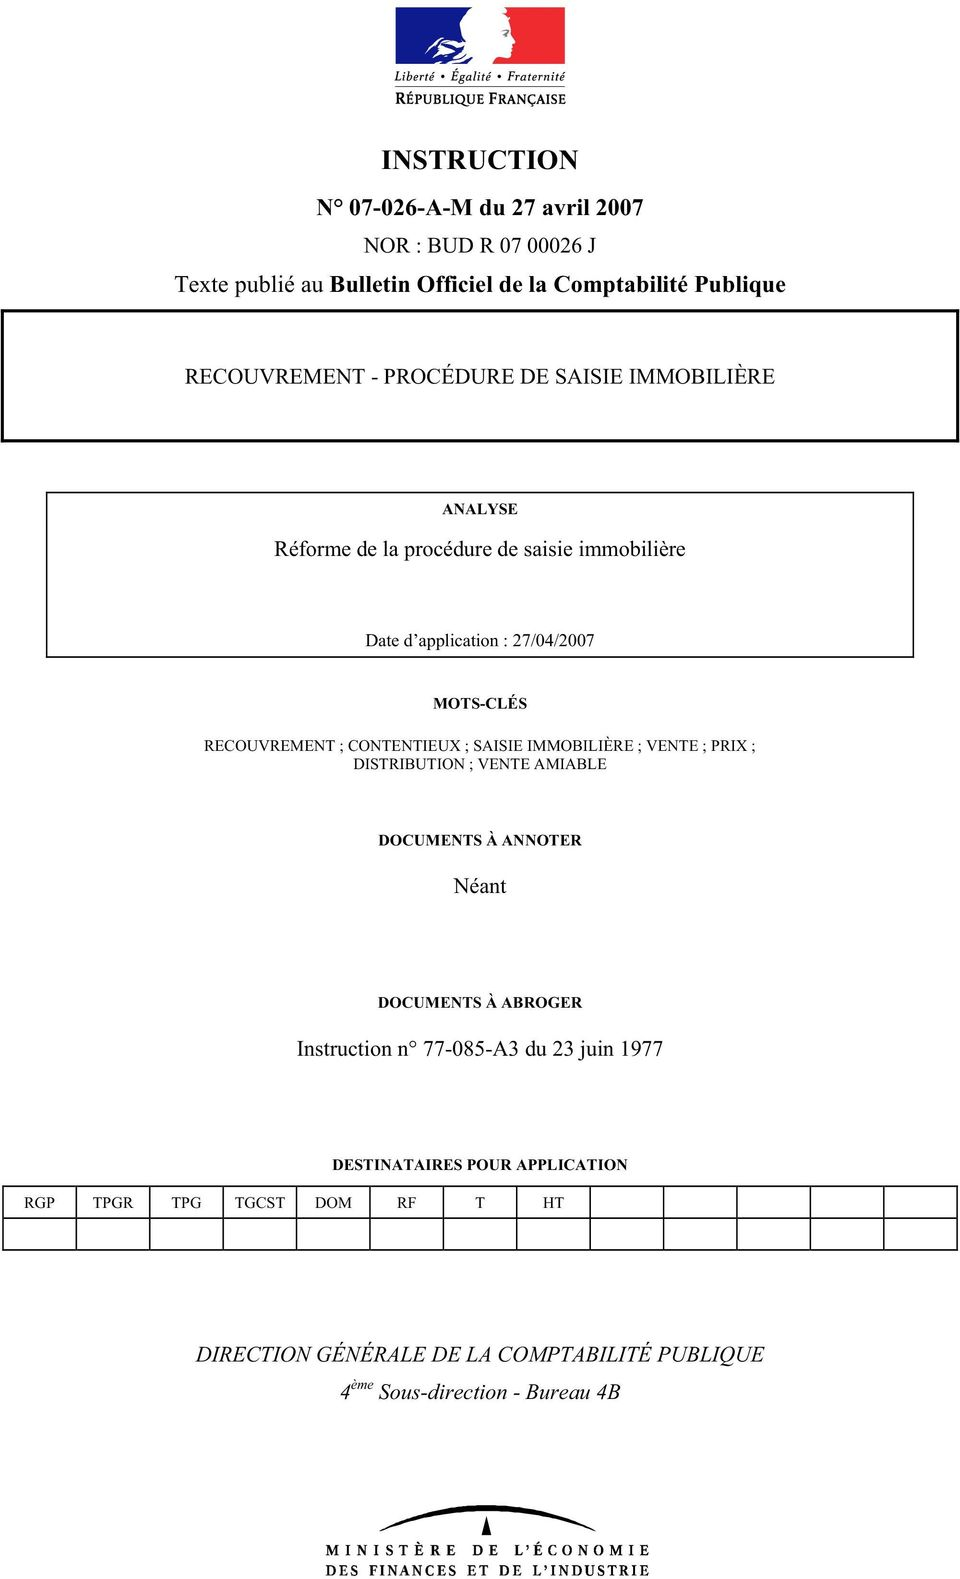 CONTENTIEUX ; SAISIE IMMOBILIÈRE ; VENTE ; PRIX ; DISTRIBUTION ; VENTE AMIABLE DOCUMENTS À ANNOTER Néant DOCUMENTS À ABROGER Instruction n